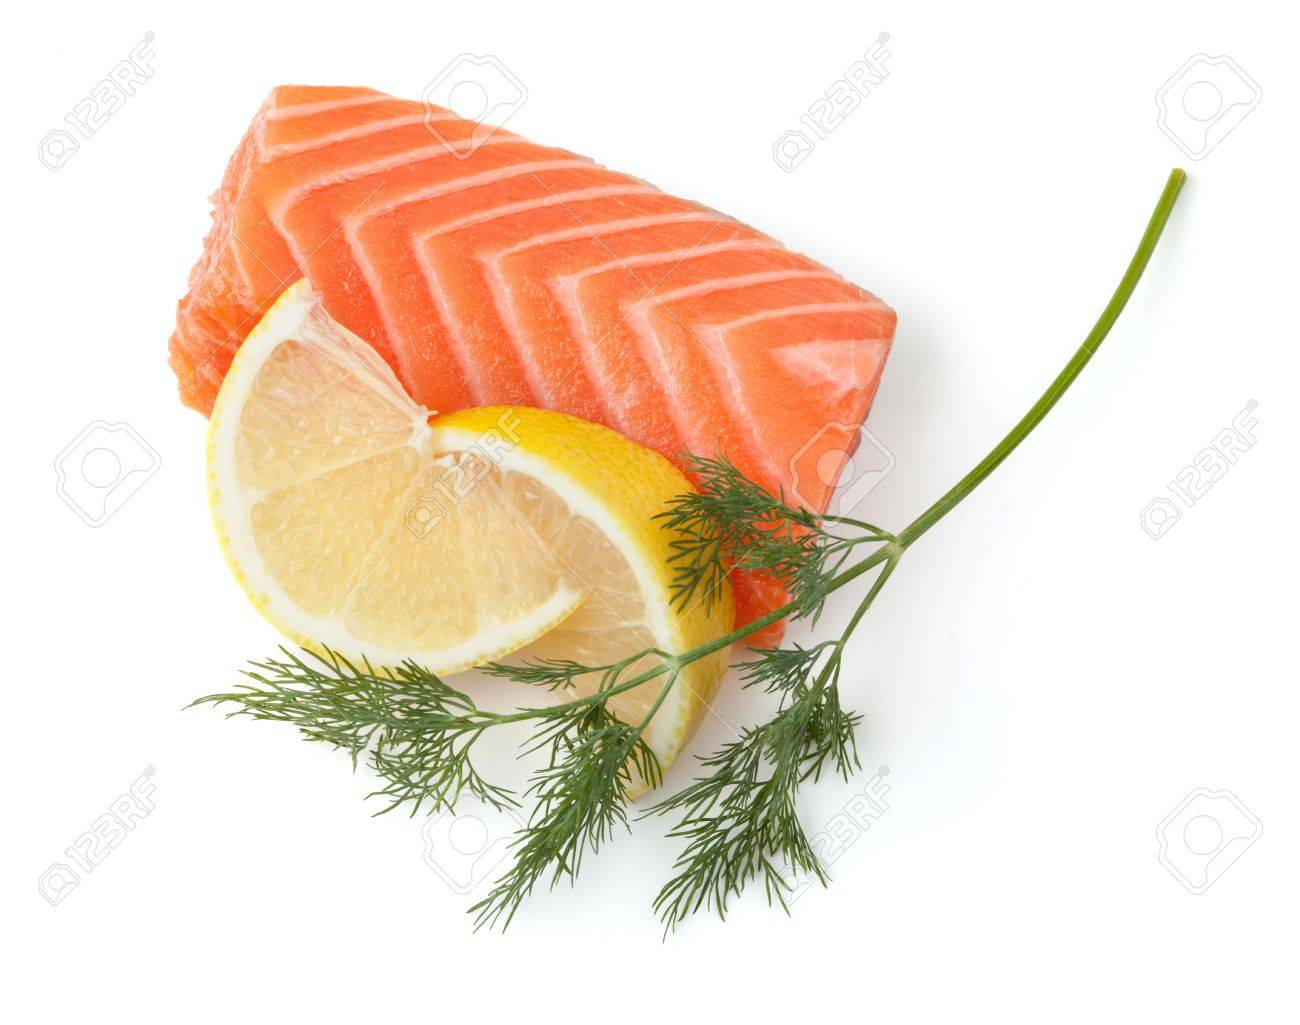 Fresh salmon steak with lemon slices and dill. Isolated on white background Stock Photo - 8326172